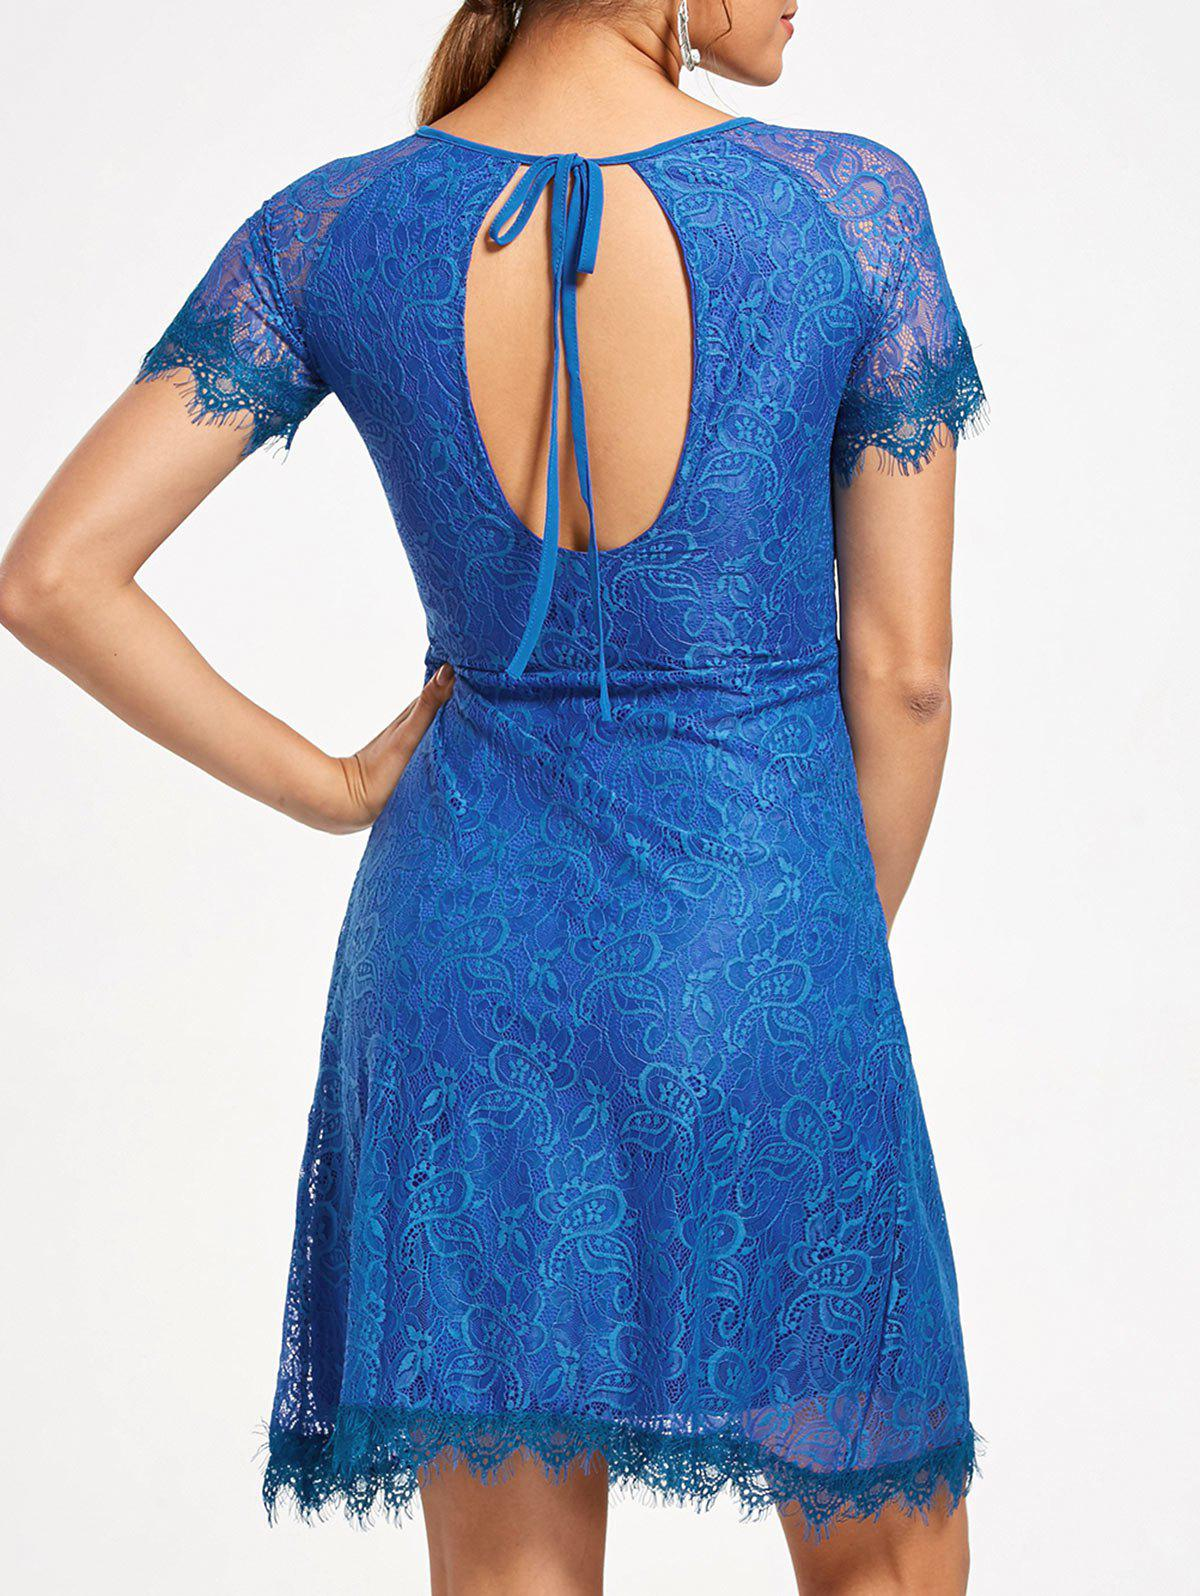 Short Raglan Sleeves Open Back Lace Dress - ROYAL L